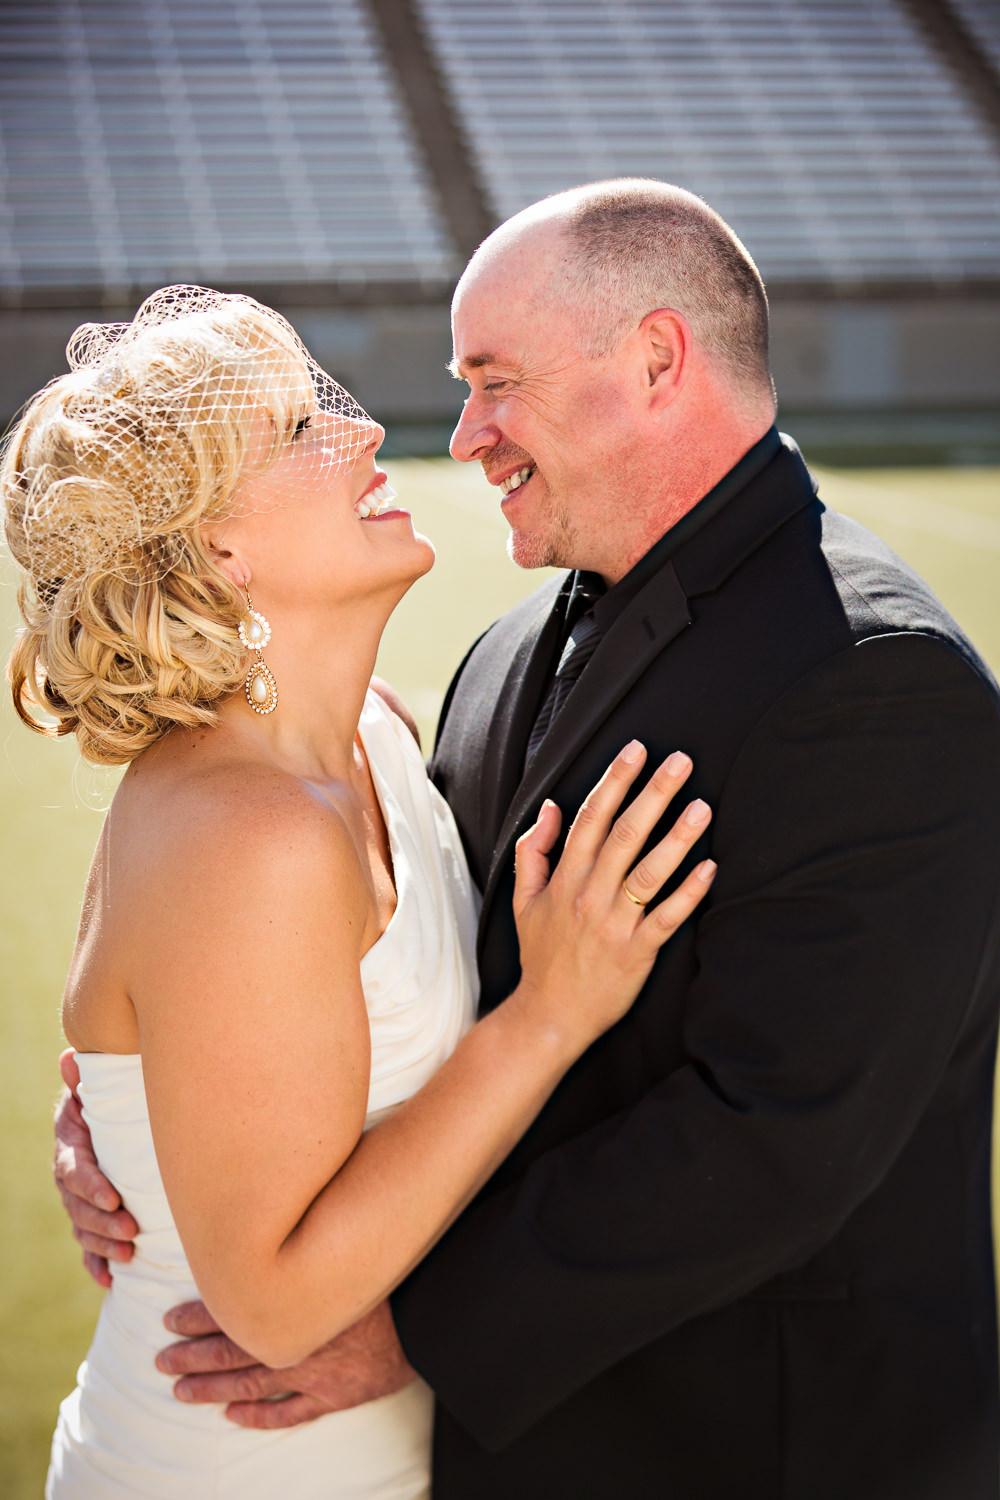 missoula-museum-mountain-flying-wedding-couple-laughing-football-field.jpg